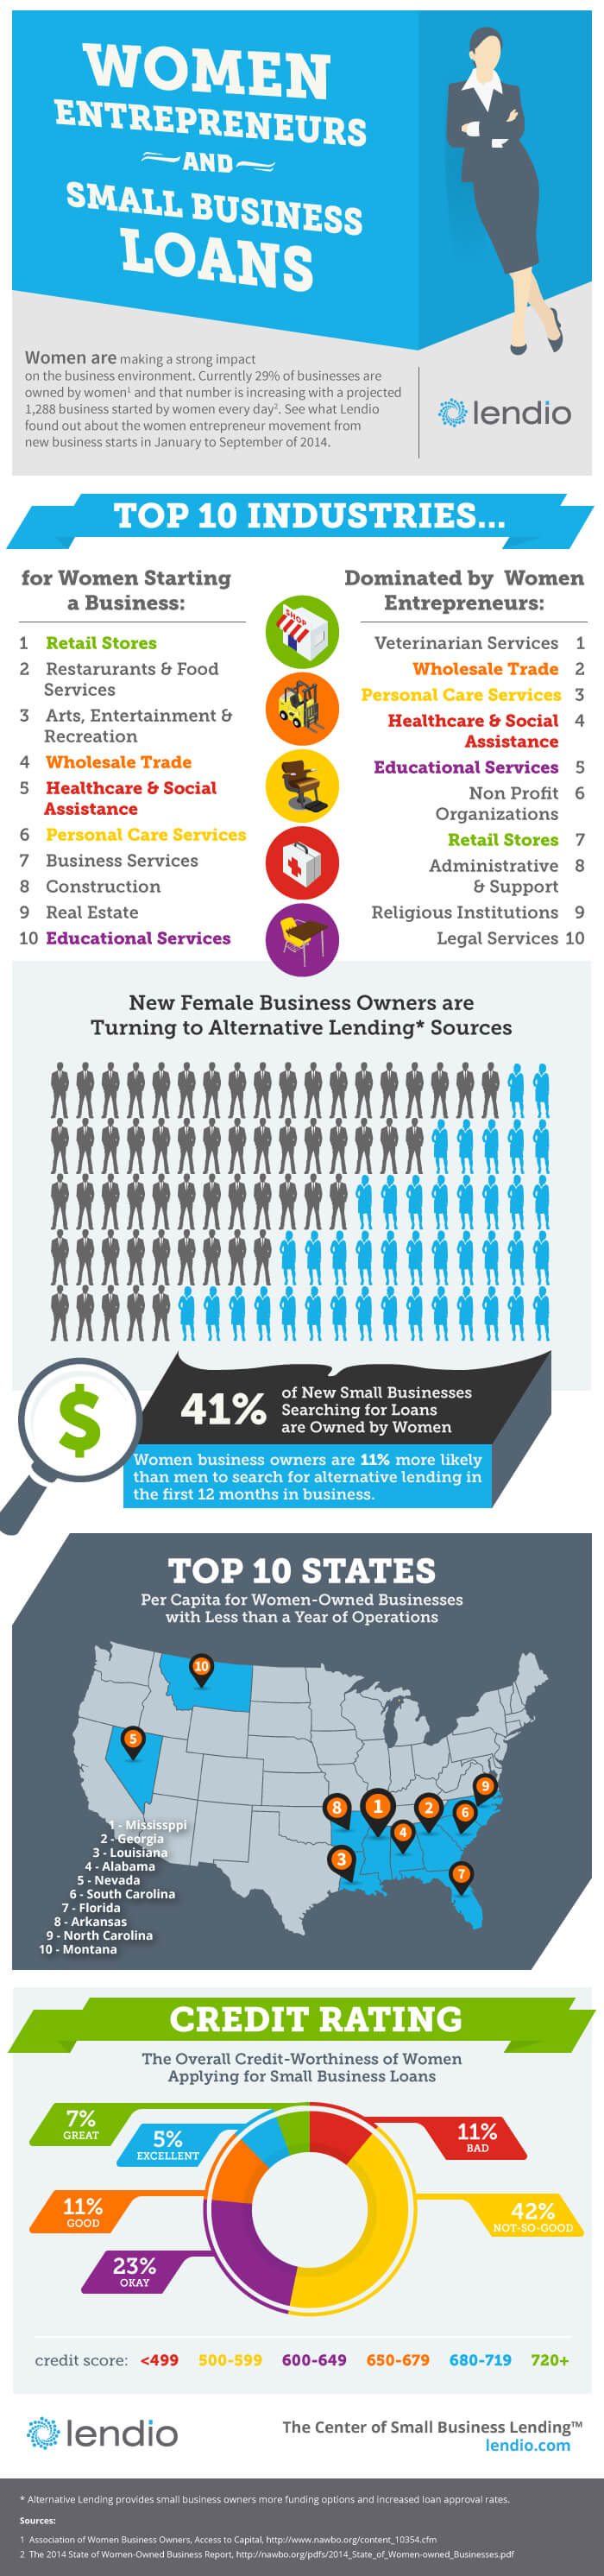 Lendio Women Entrepreneurs and Small Business Loans